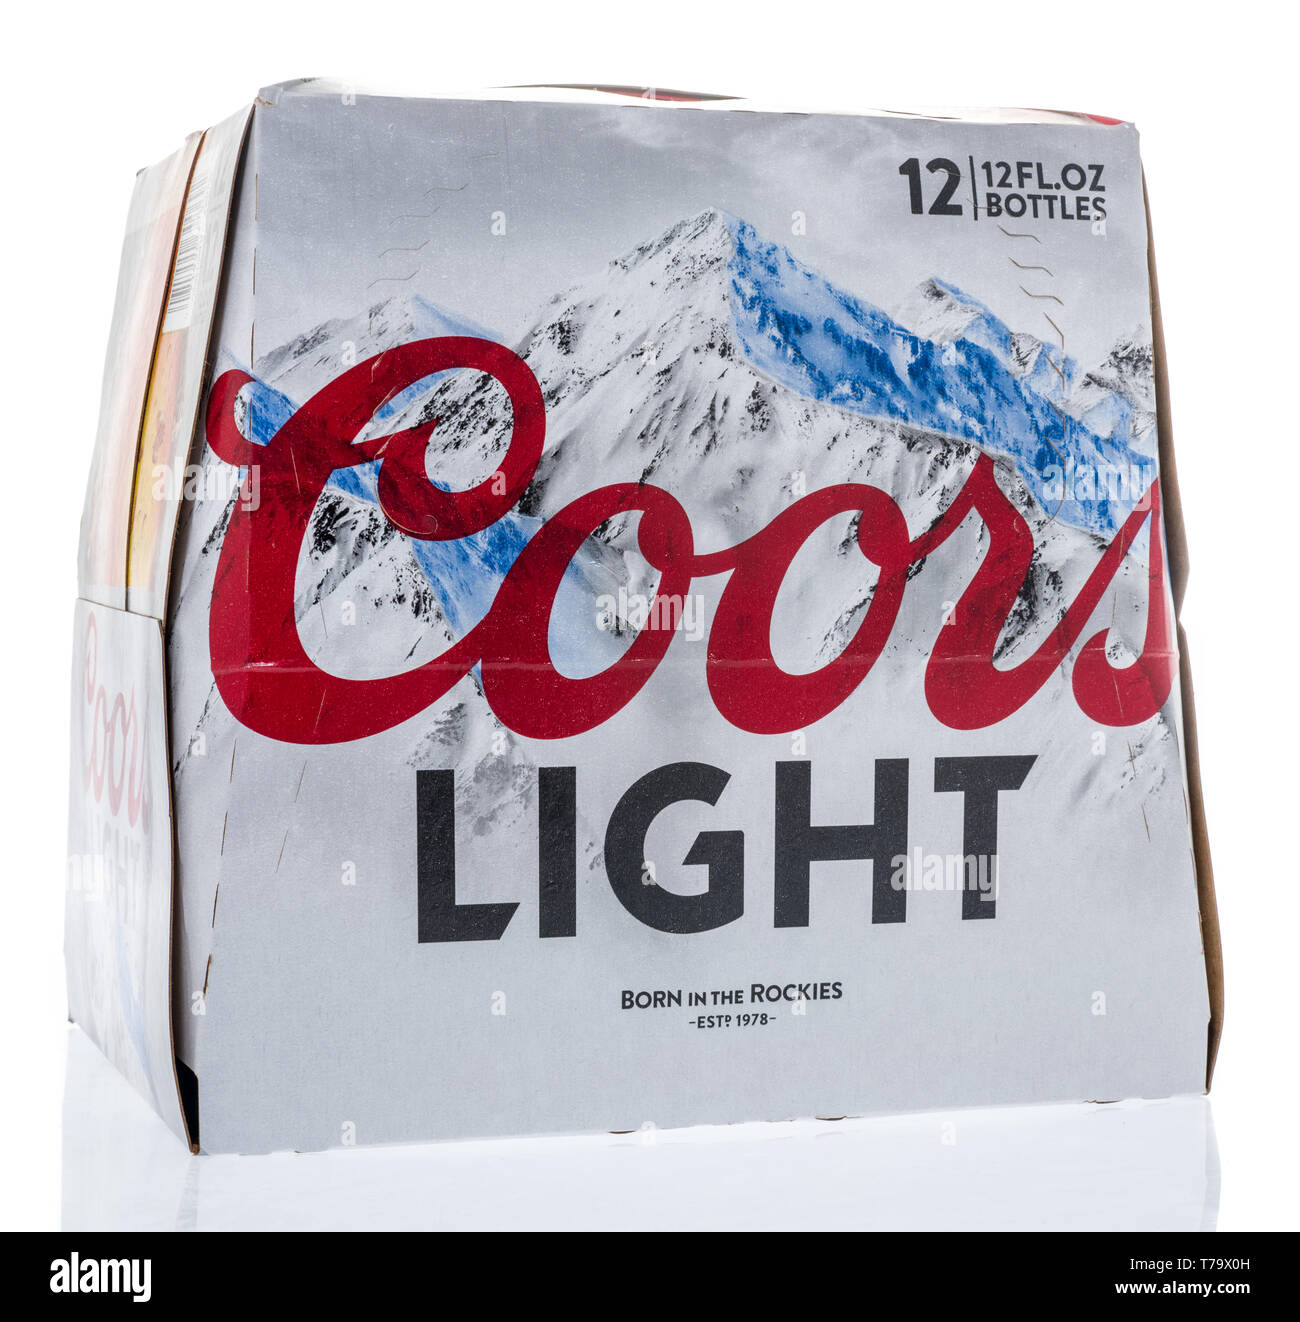 Adolph Coors Iii Stock Photos And Pictures: Coors Light Stock Photos & Coors Light Stock Images